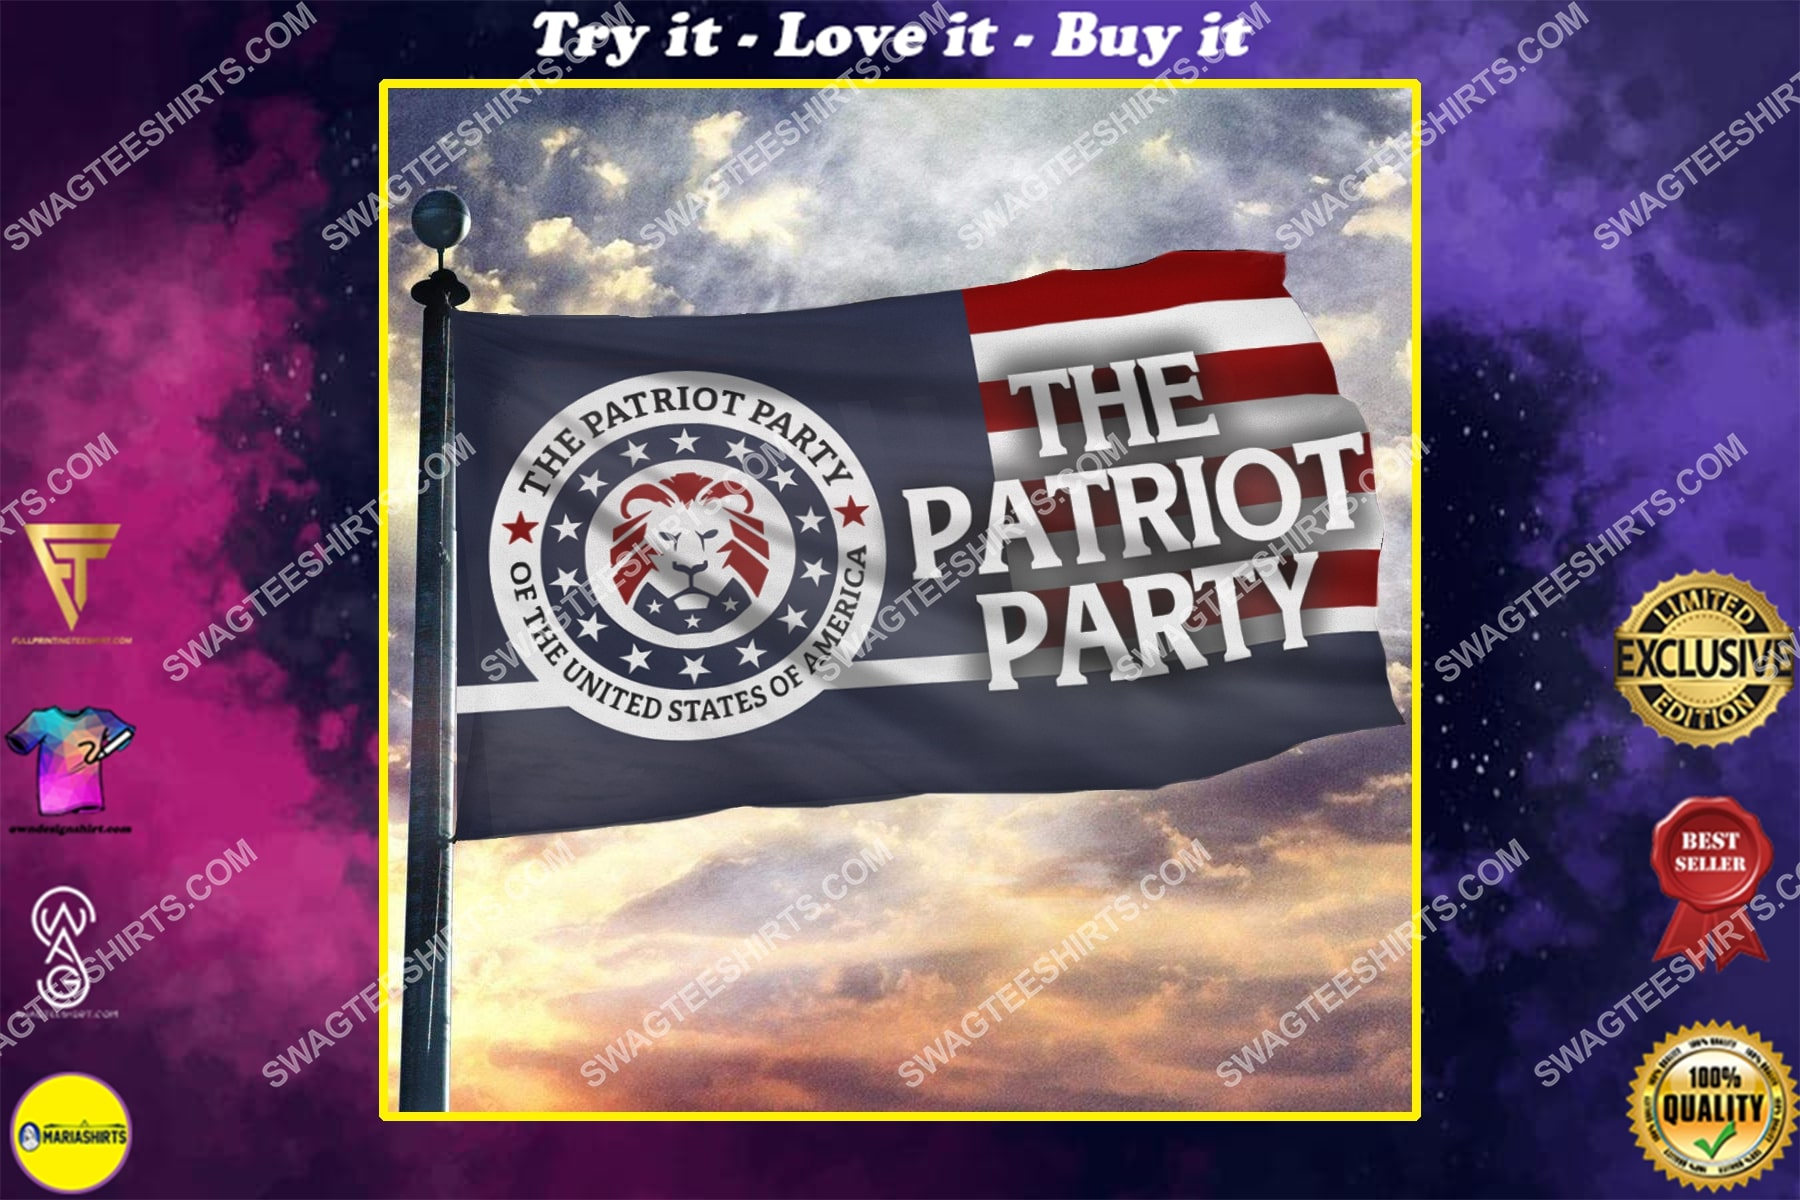 the patriot party of the united states of america politics flag